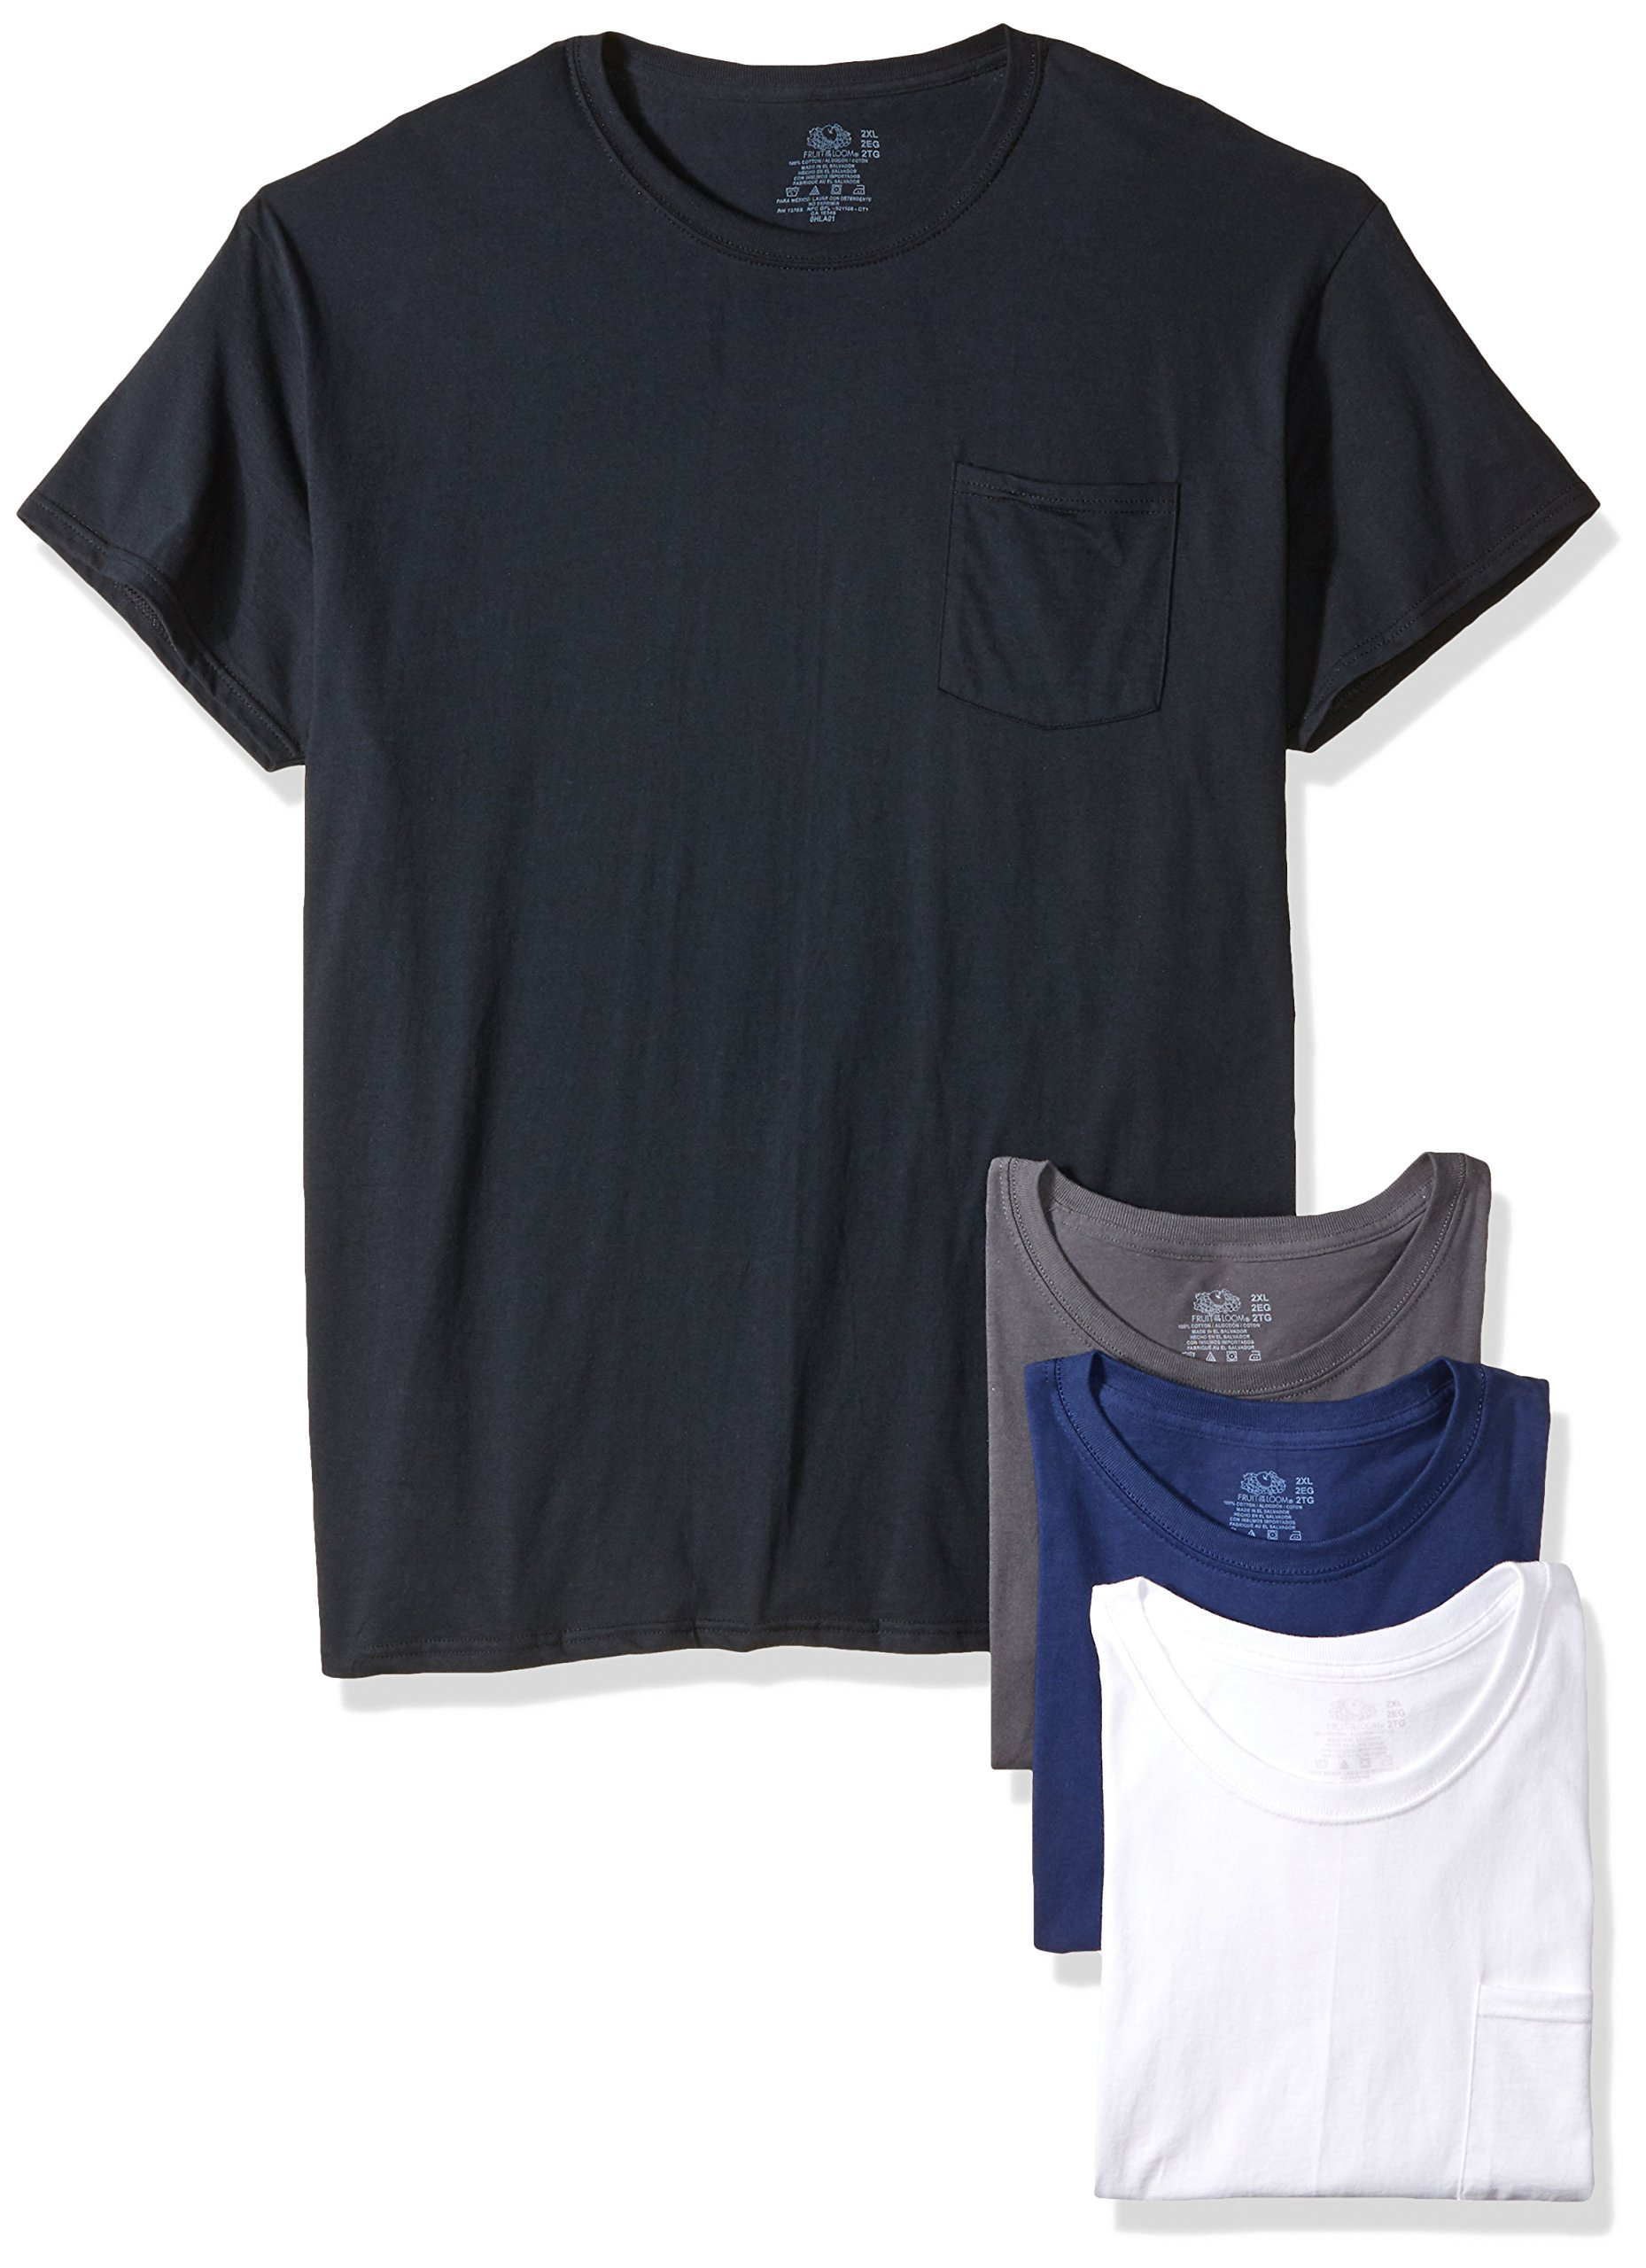 Fruit of the Loom Men's Pocket Crew Neck T-Shirt - X-Large - Assorted Colors (Pack of 4) by Fruit of the Loom